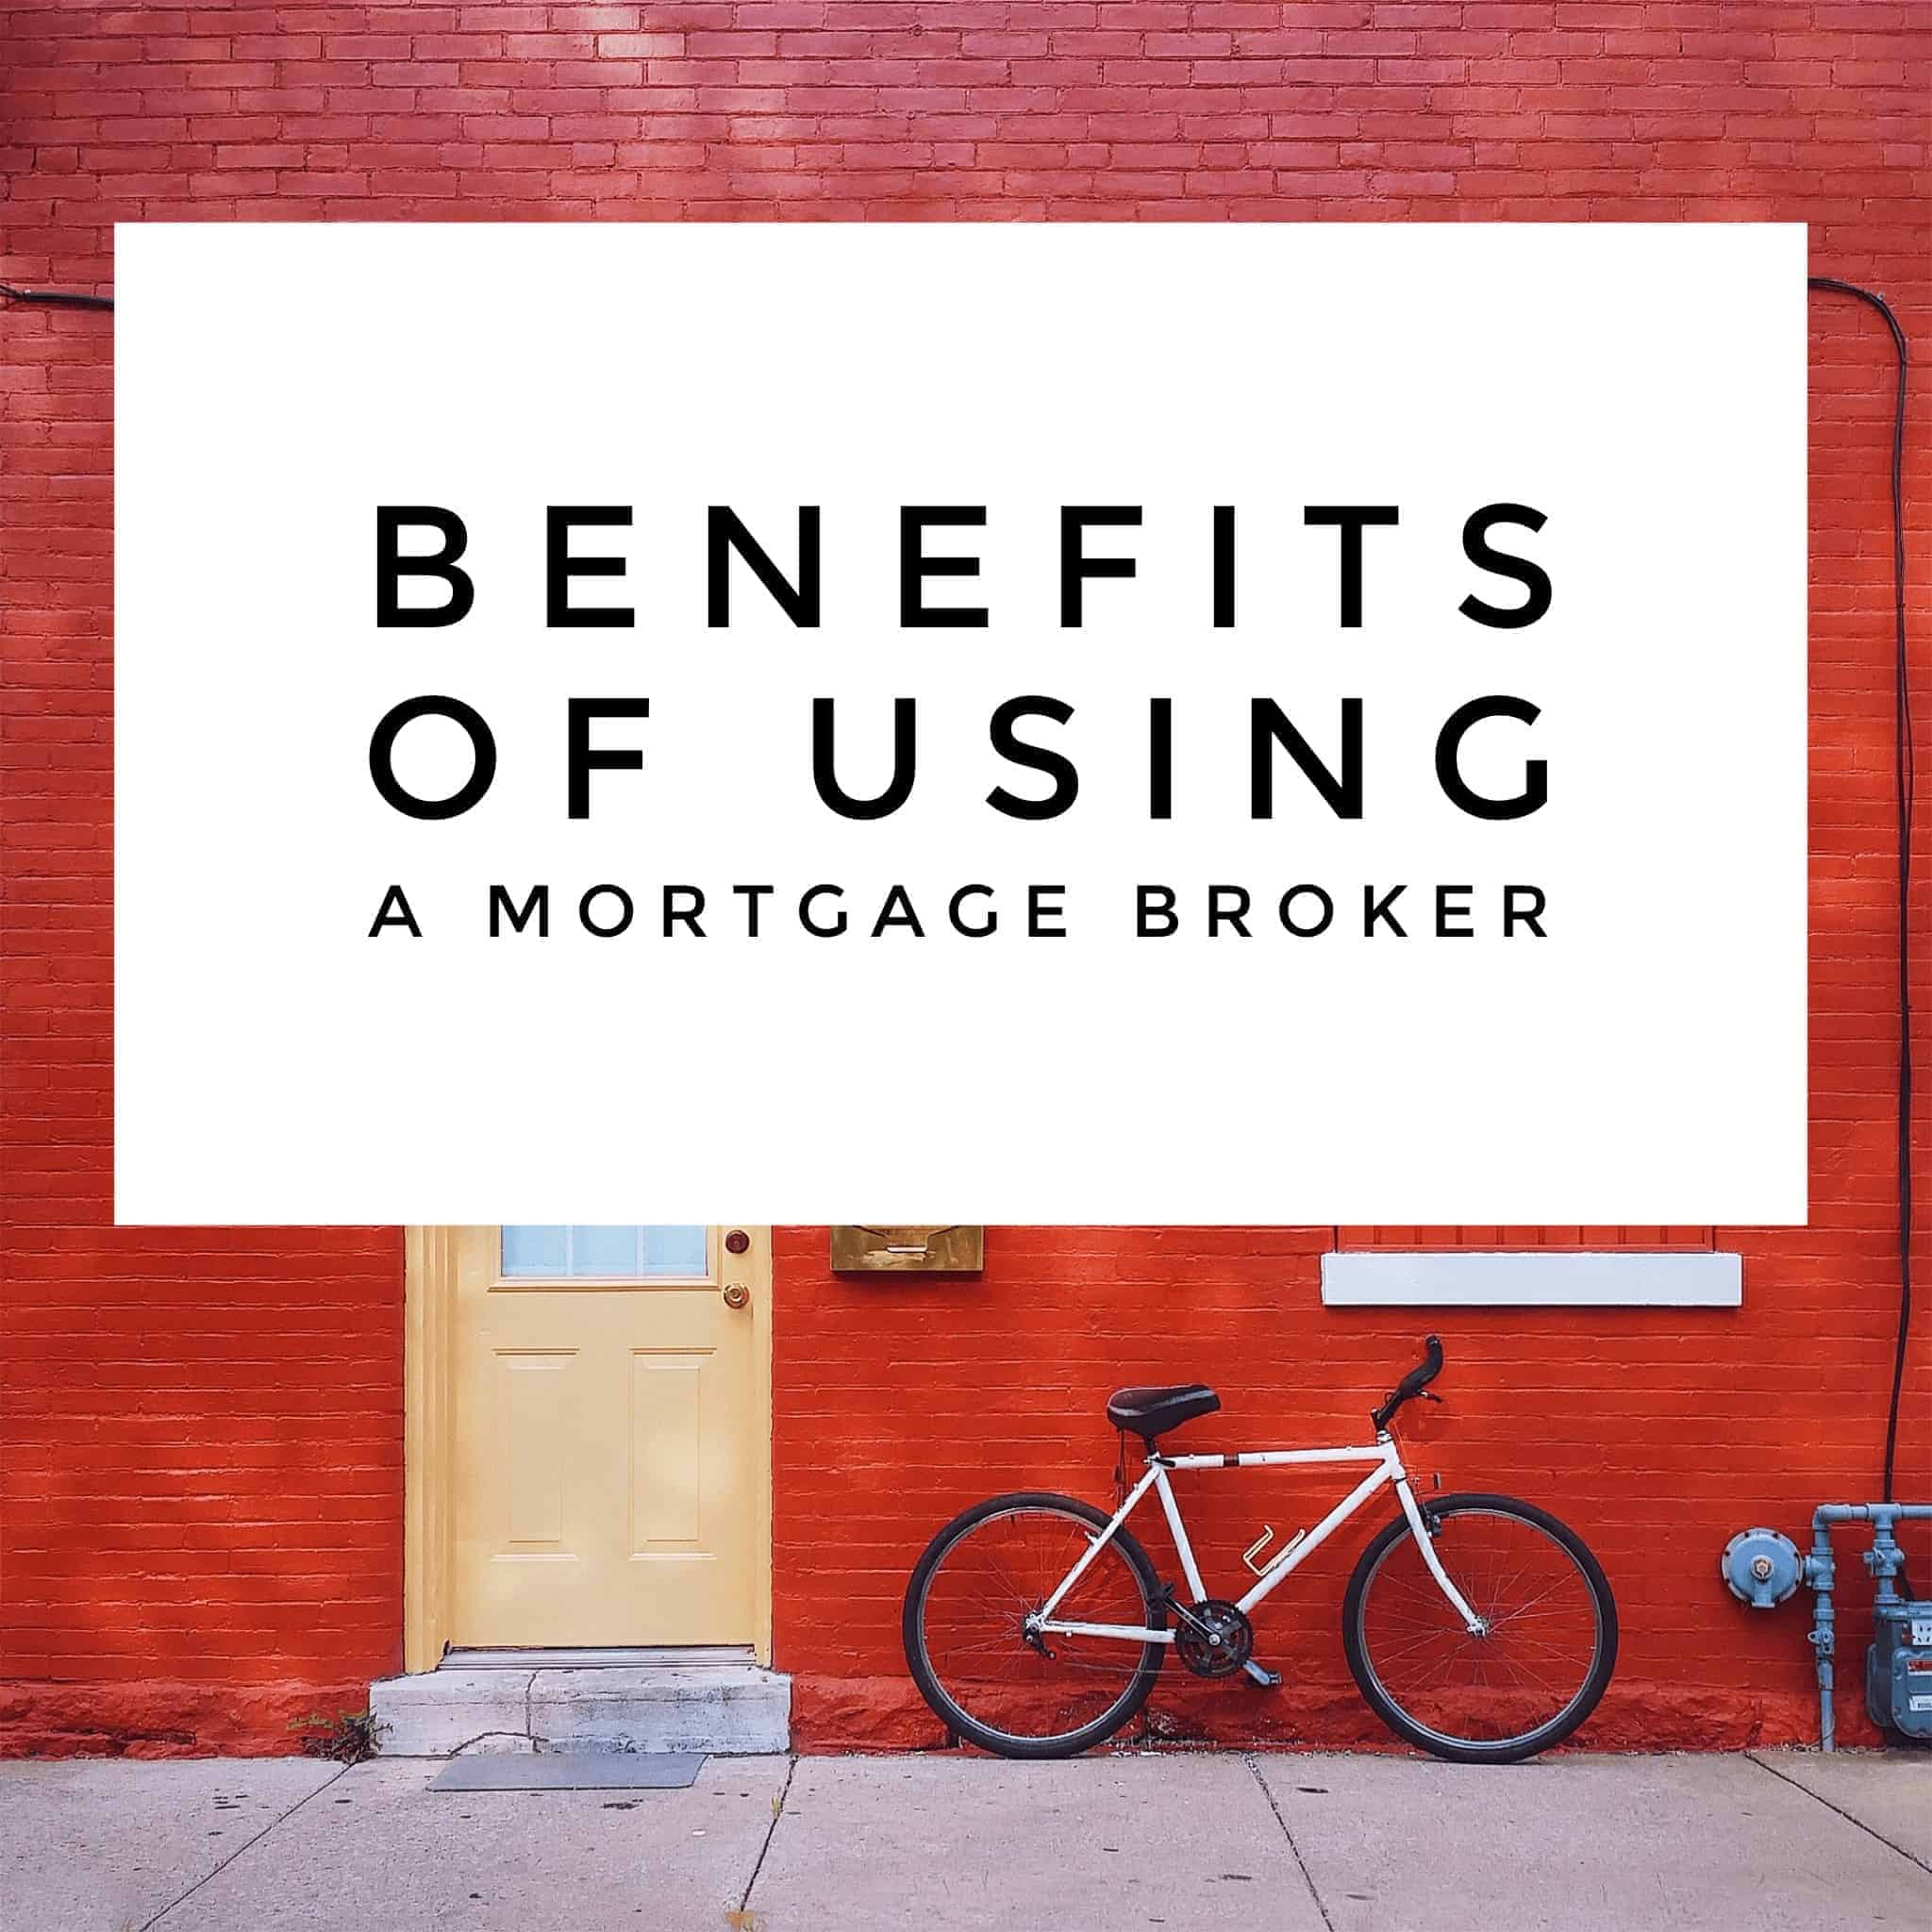 The Benefits of Using Mortgage Brokers